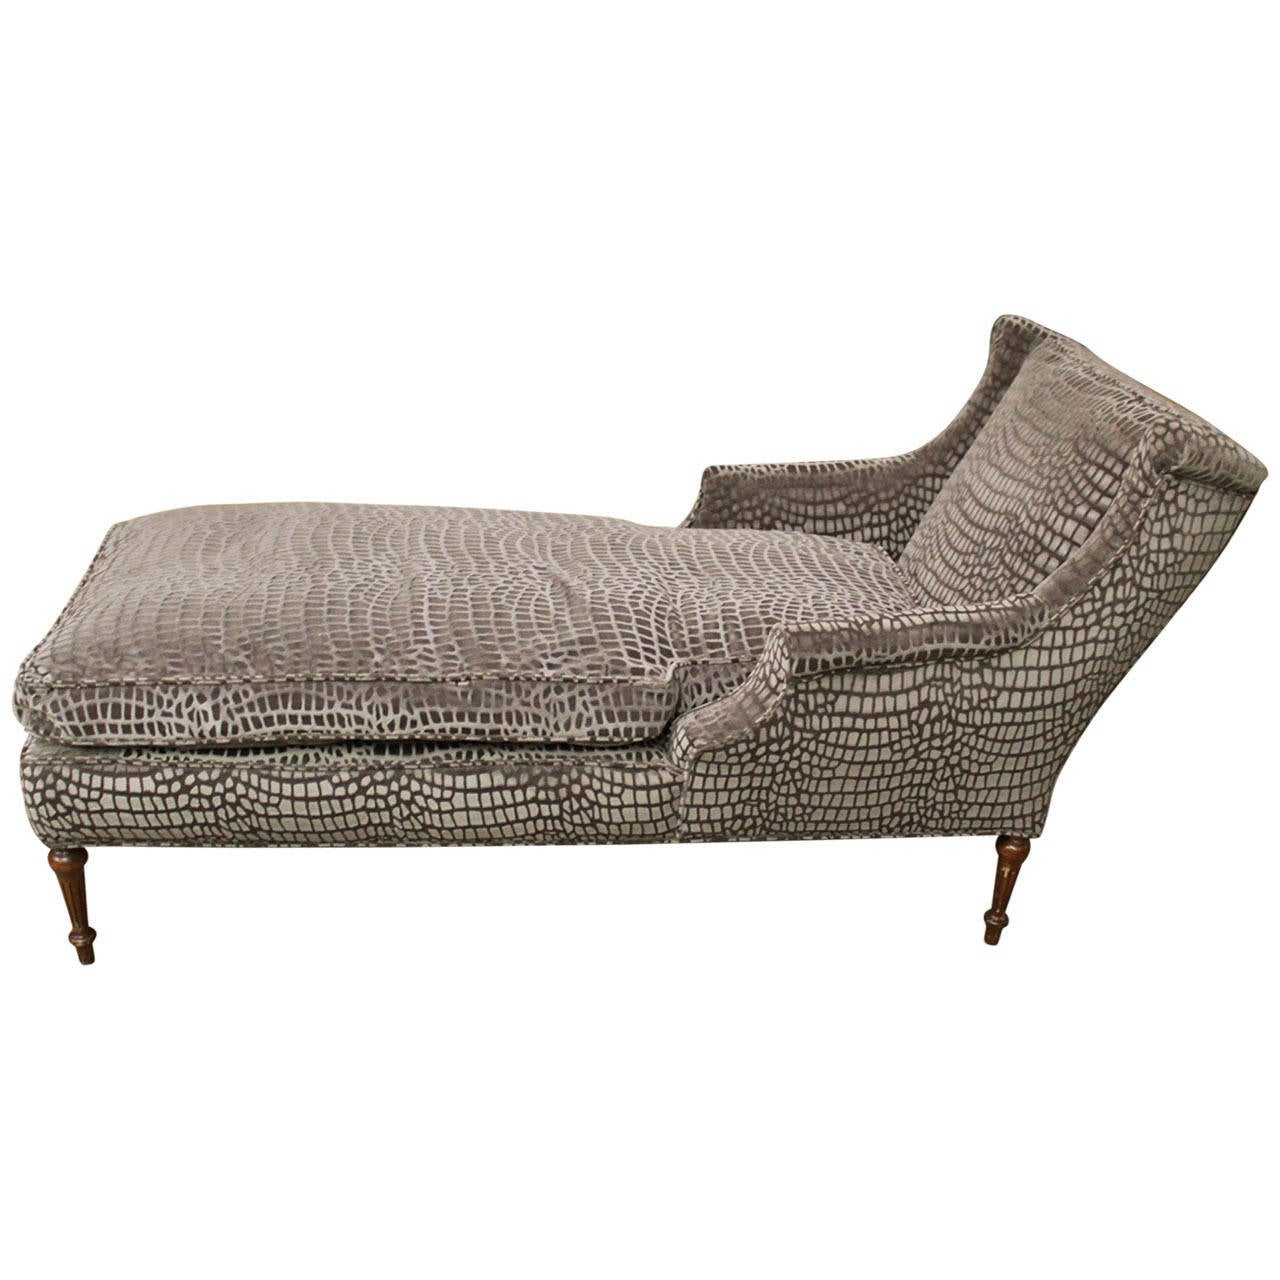 French chaise longue at 1stdibs for Chaise longue france